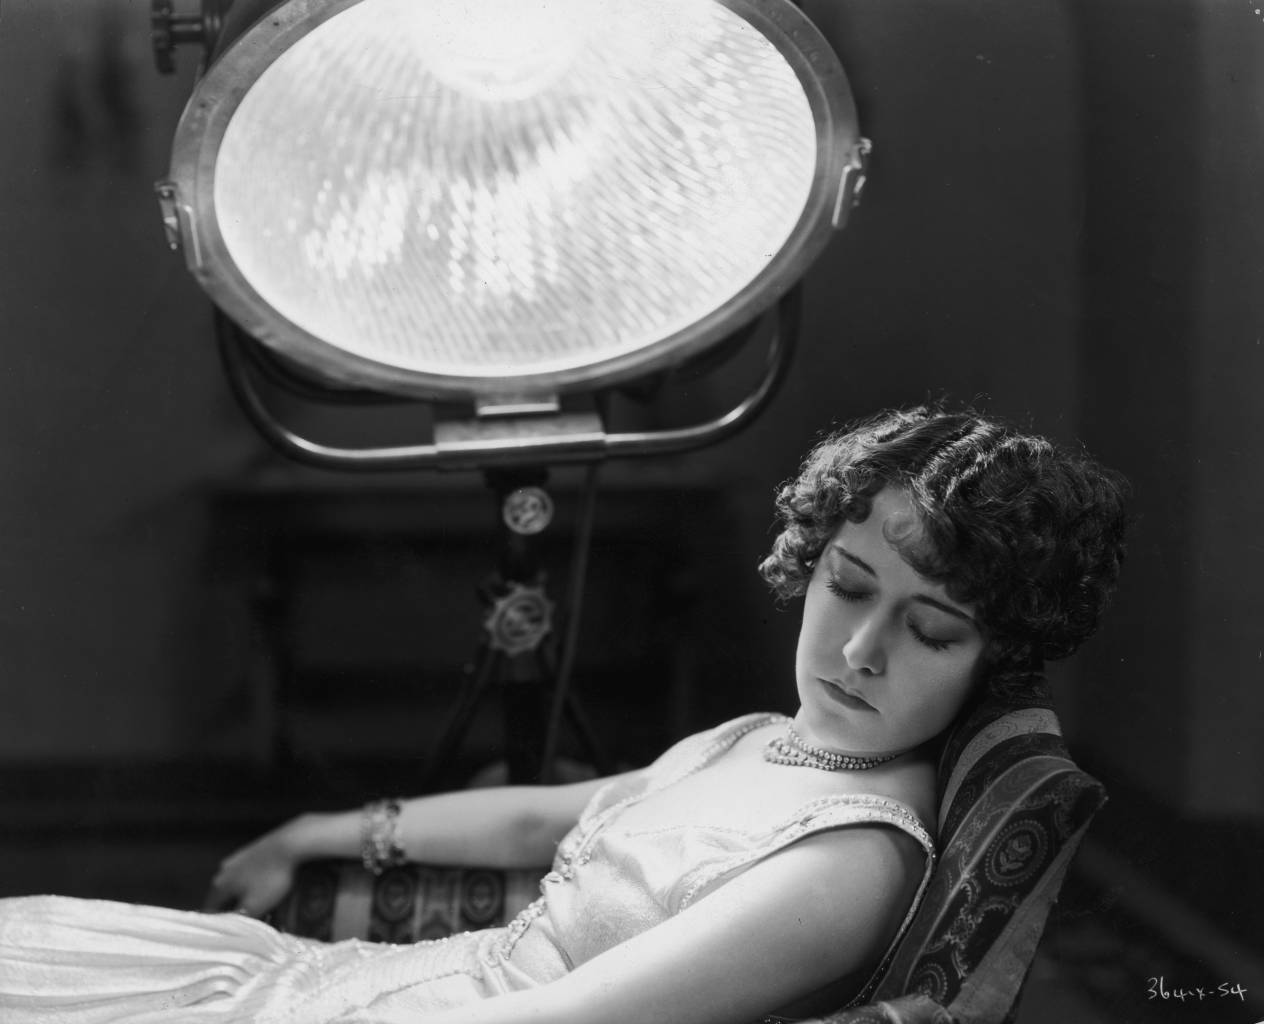 circa 1930:  Hollywood film star, Dorothy Sebastian (1903 - 1957) undergoing treatment for bronchial congestion with a sun-ray lamp at MGM studios.  (Photo by General Photographic Agency/Getty Images)